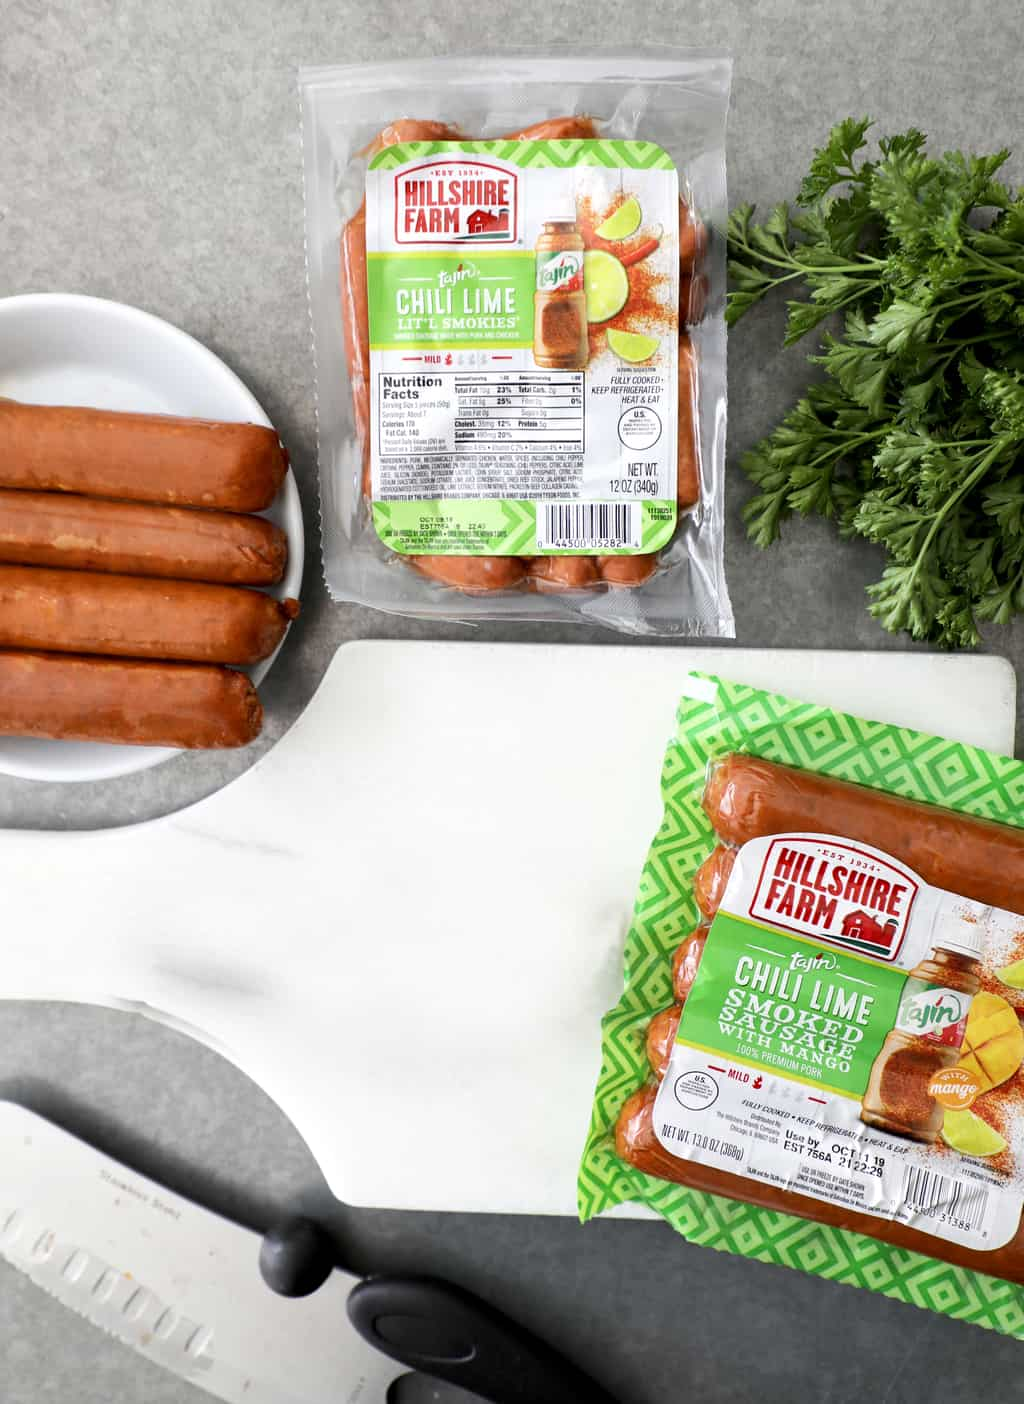 hillshire farms sausage links on a plate by a cutting board and little smokies package